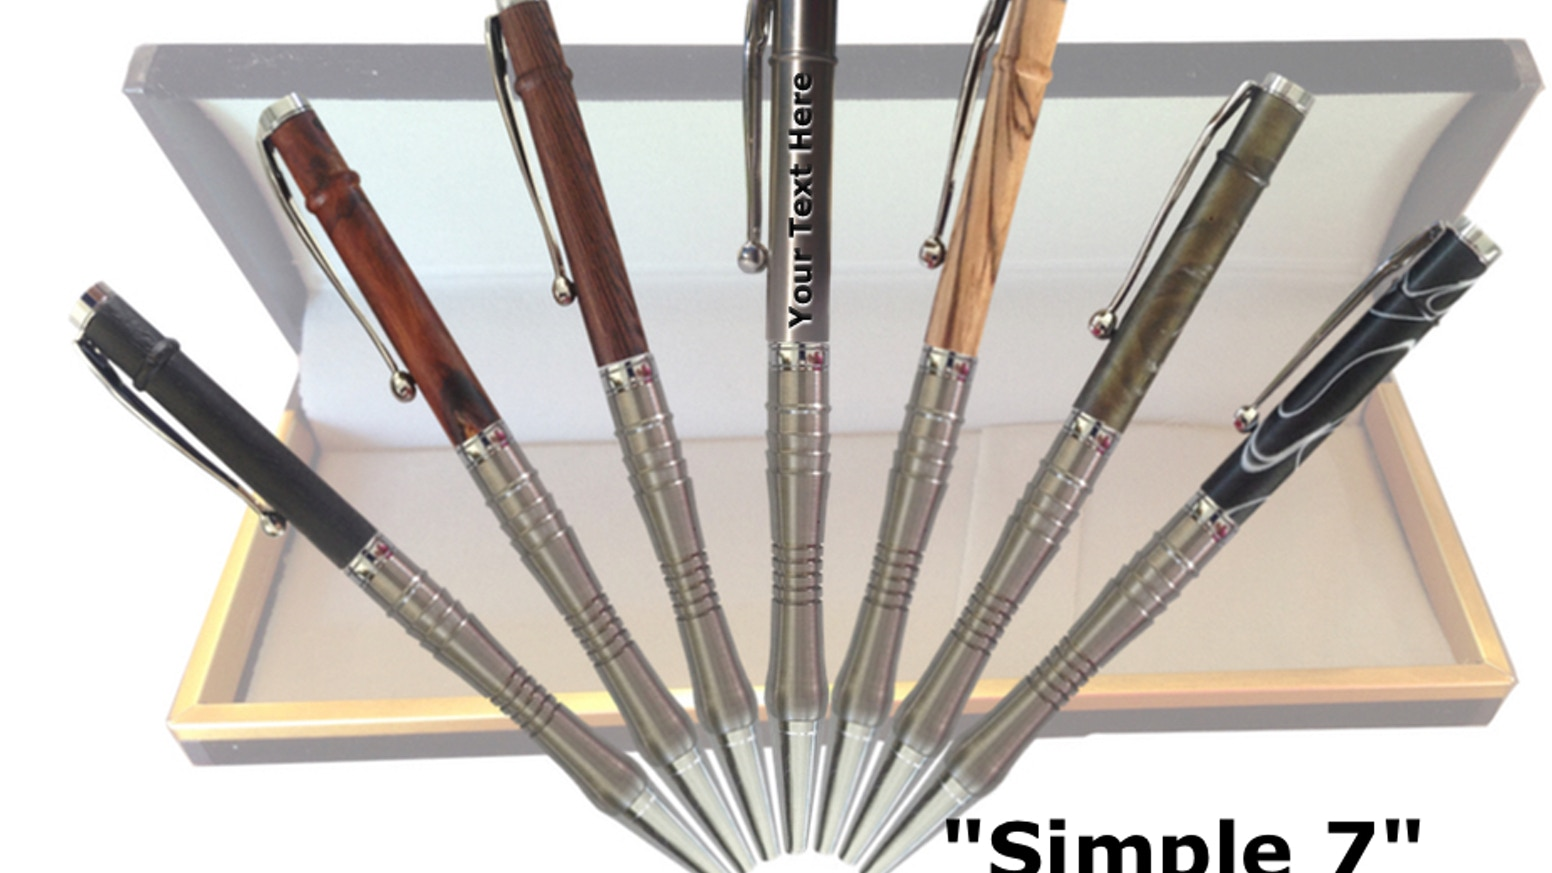 Simple 7 designed tungsten writing pens by beck kickstarter simple 7 designed tungsten writing pens nvjuhfo Gallery